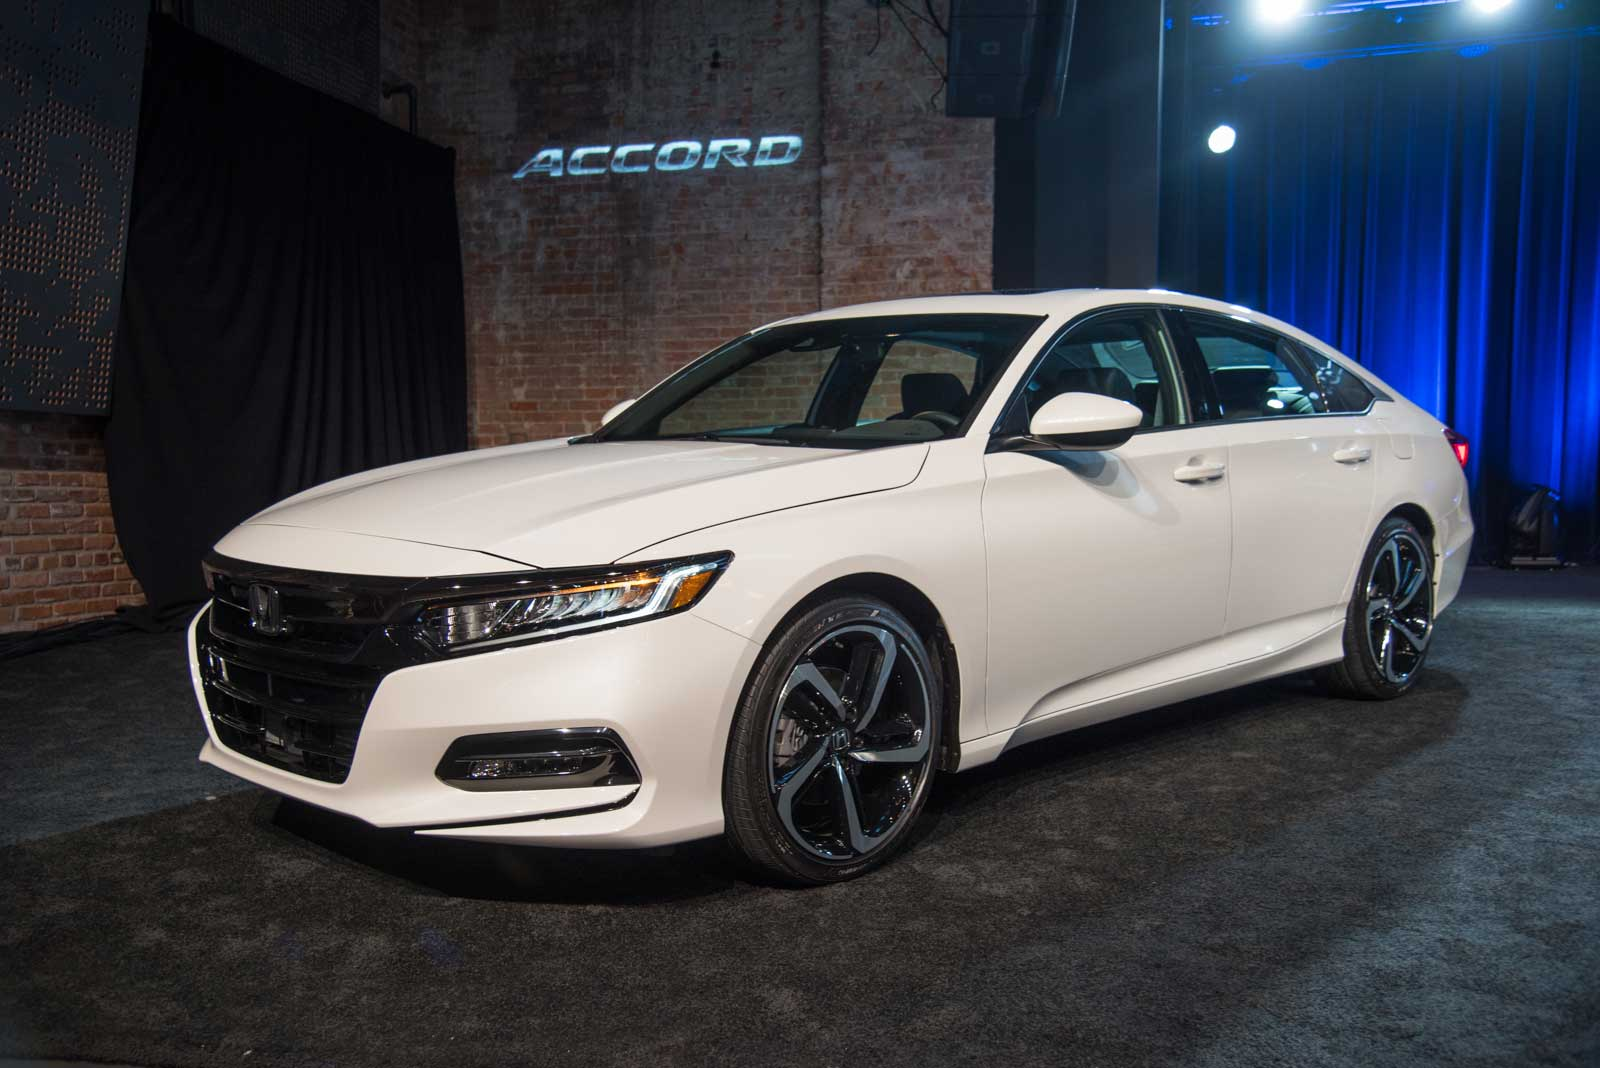 New Honda Accord 2018 Model Page 2 Serayamotor Com